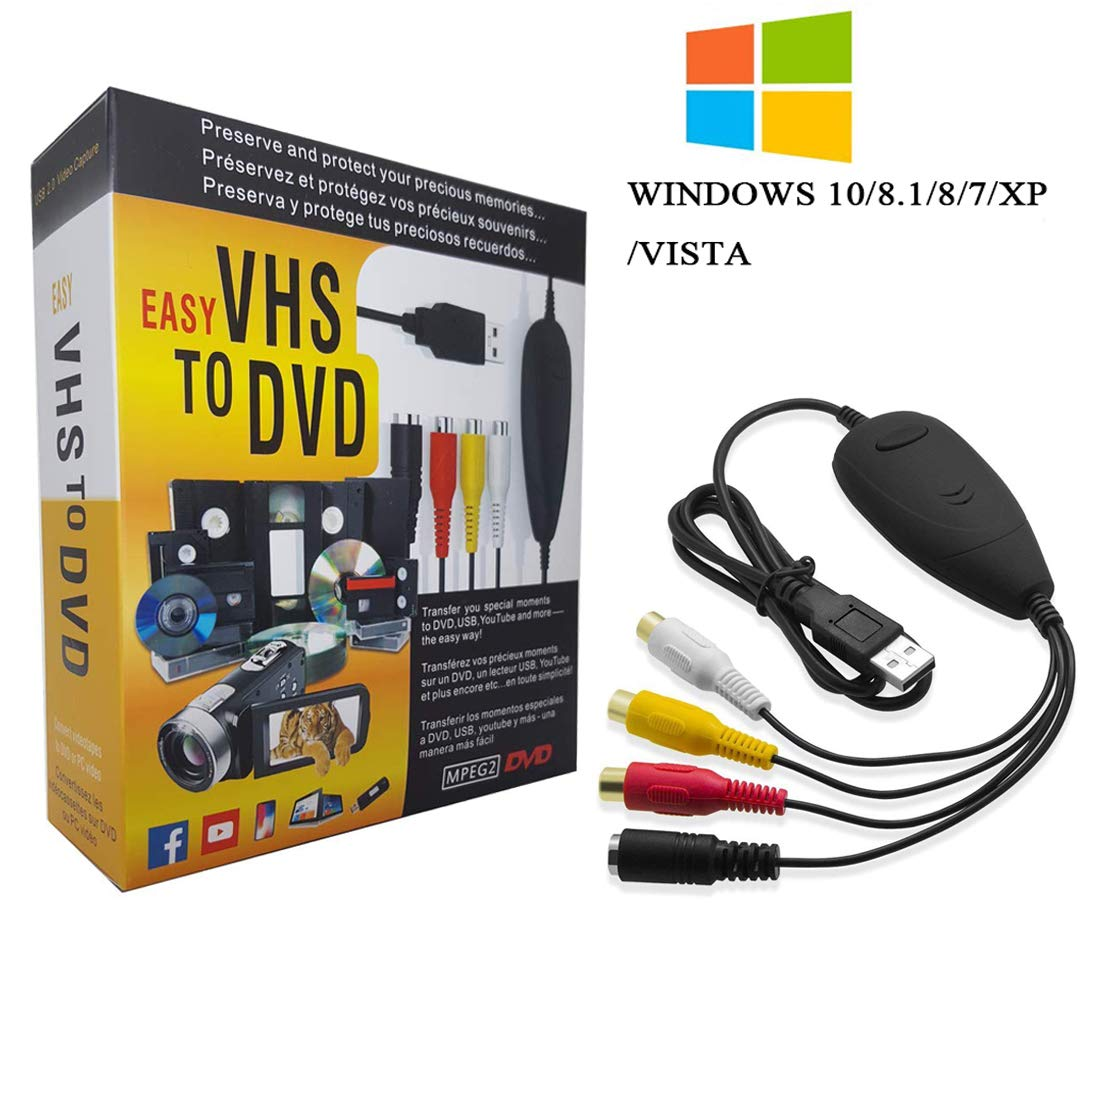 [2018 Updated] VHS to Digital Converter for Windows 10,USB2.0 Video Audio Capture Card Grabber Device,VHS to DVD Converter Support Windows 10/8/7/XP/VISTA/Convert Analog Video to Digital Format